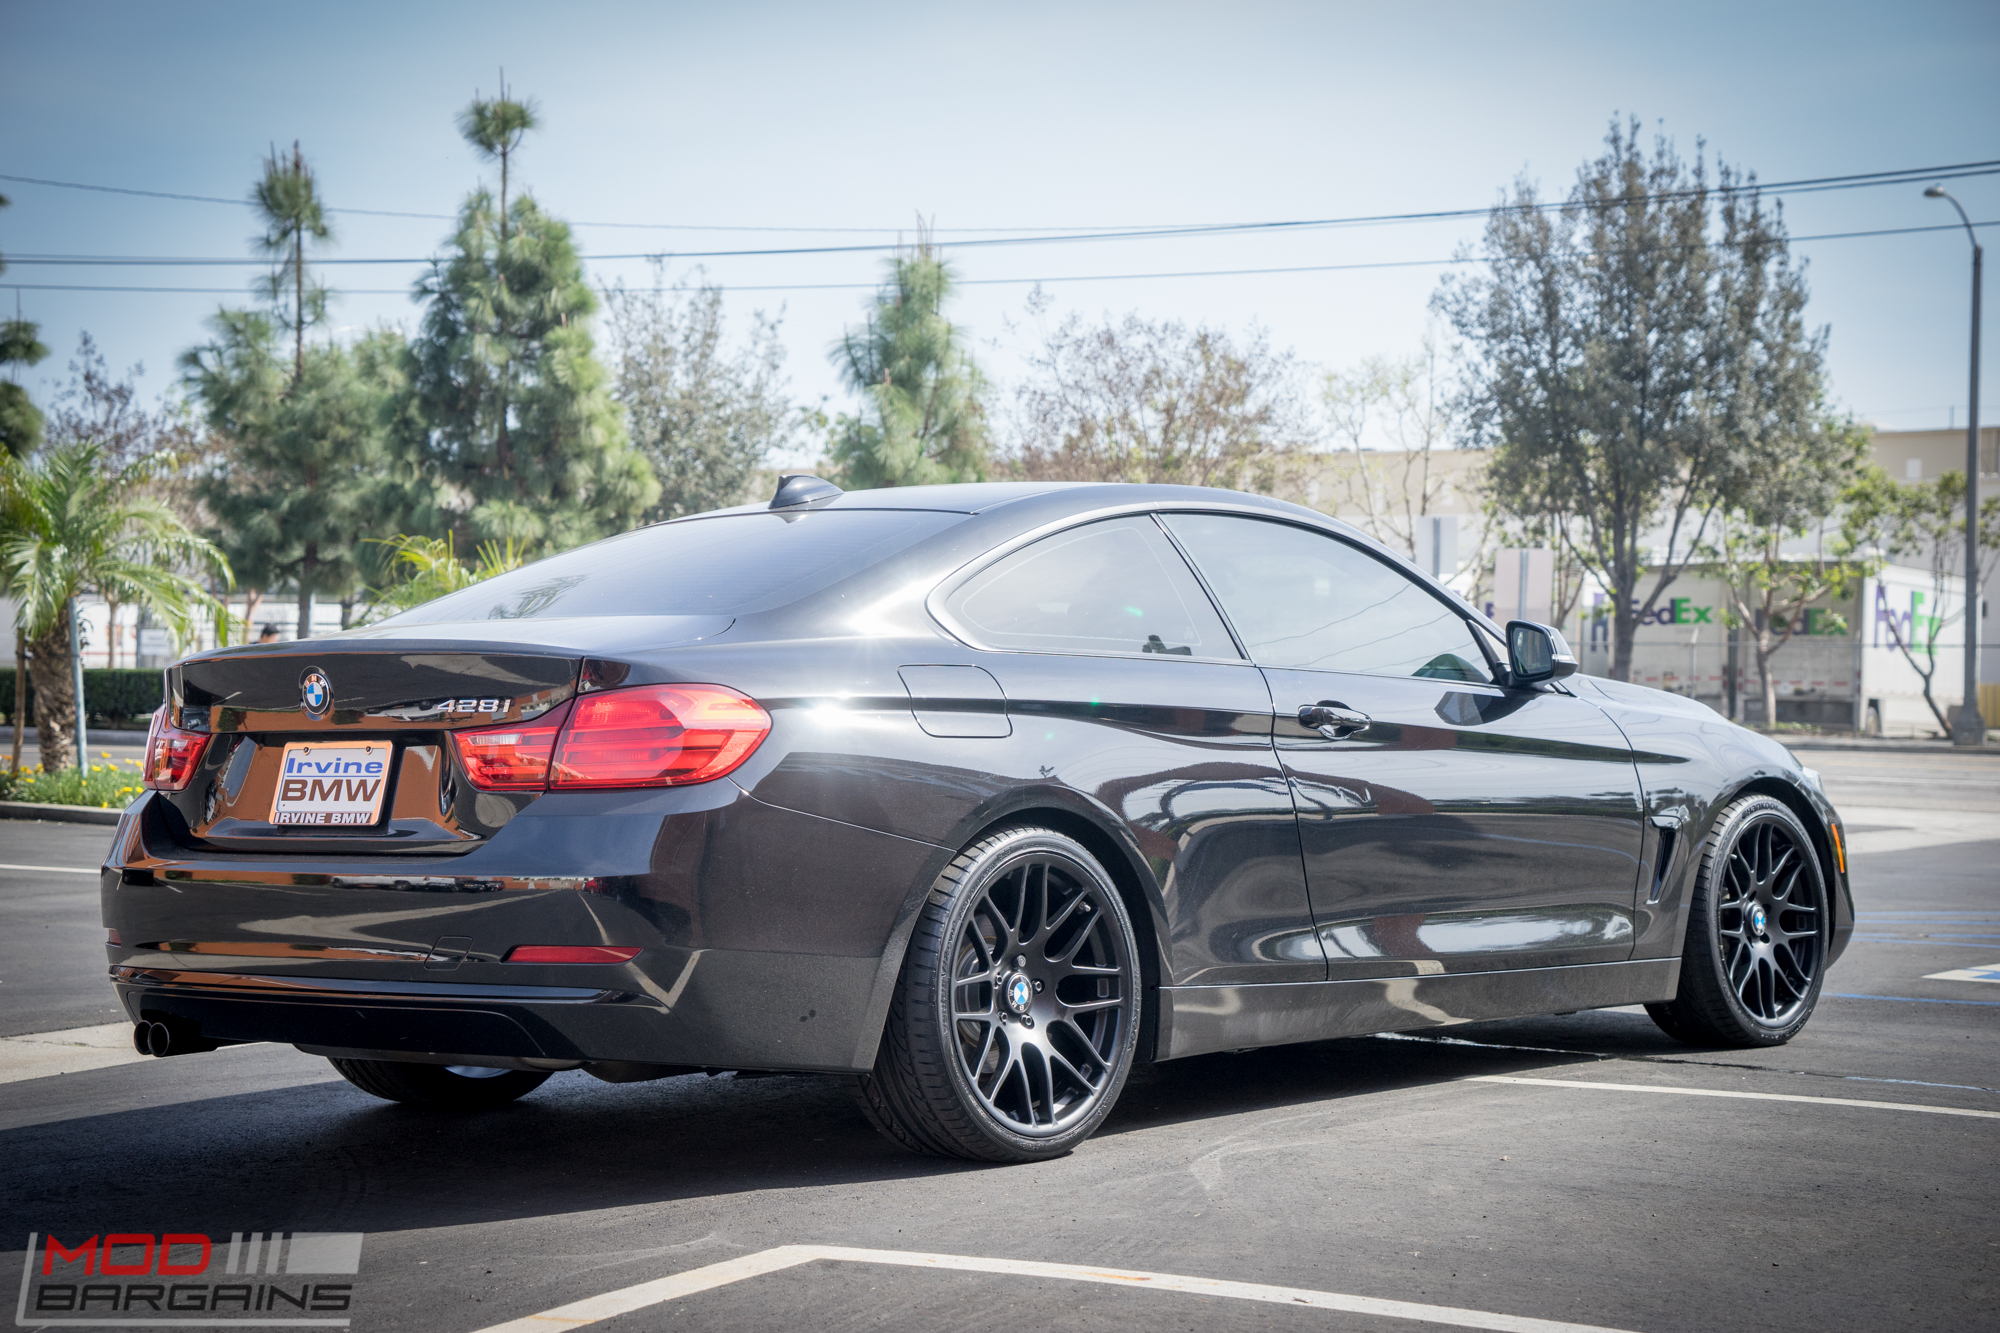 Used Car Dealer Near Los Angeles South Bay Bmw  Autos Post